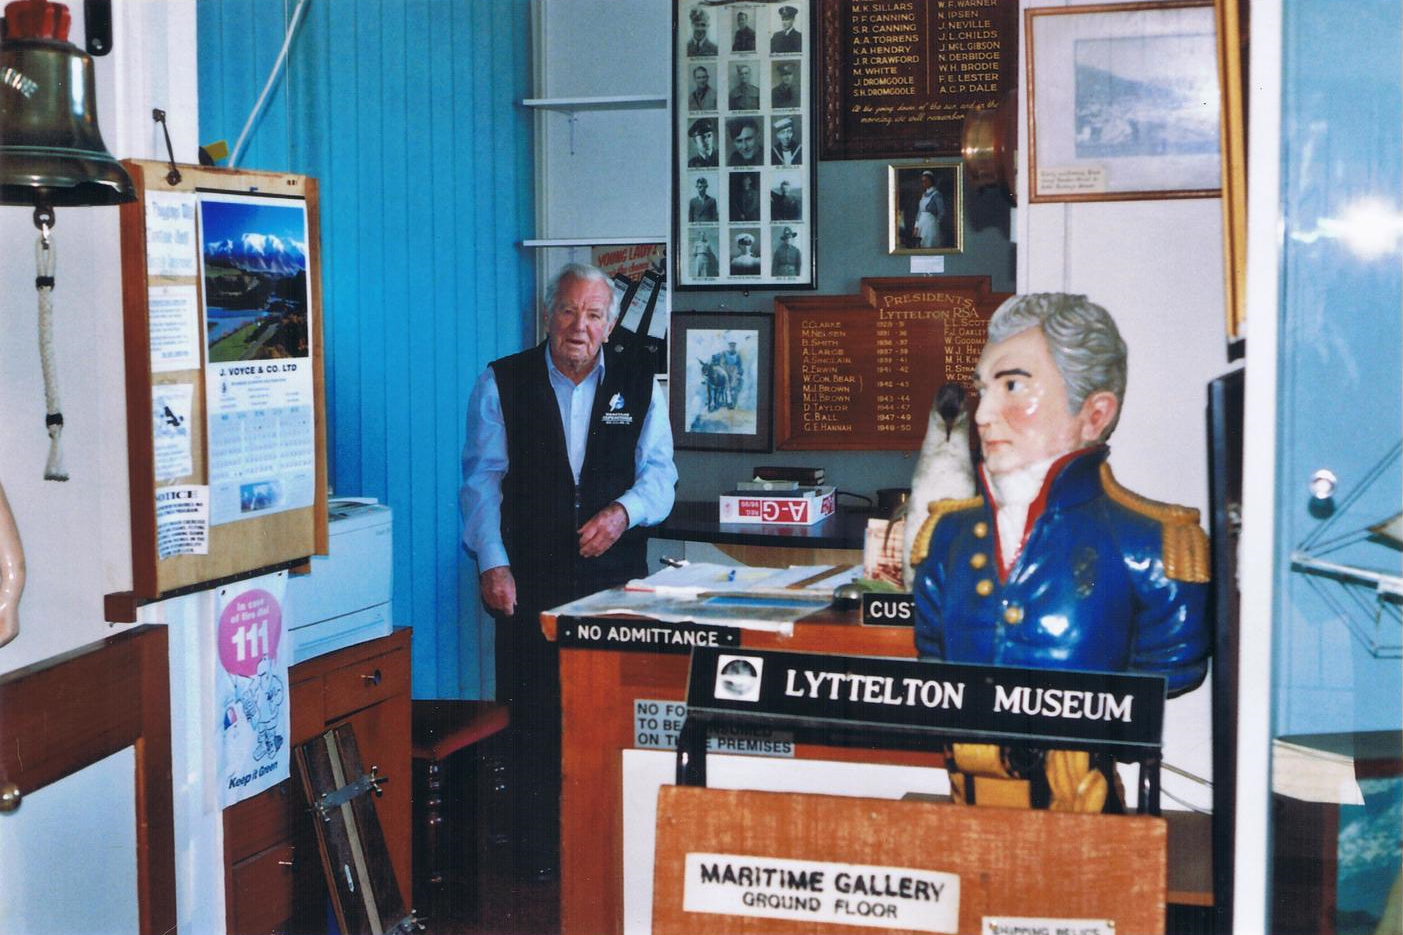 Baden Norris behind the desk at the Museum on Gladstone Quay. c. Lyttelton Museum collection